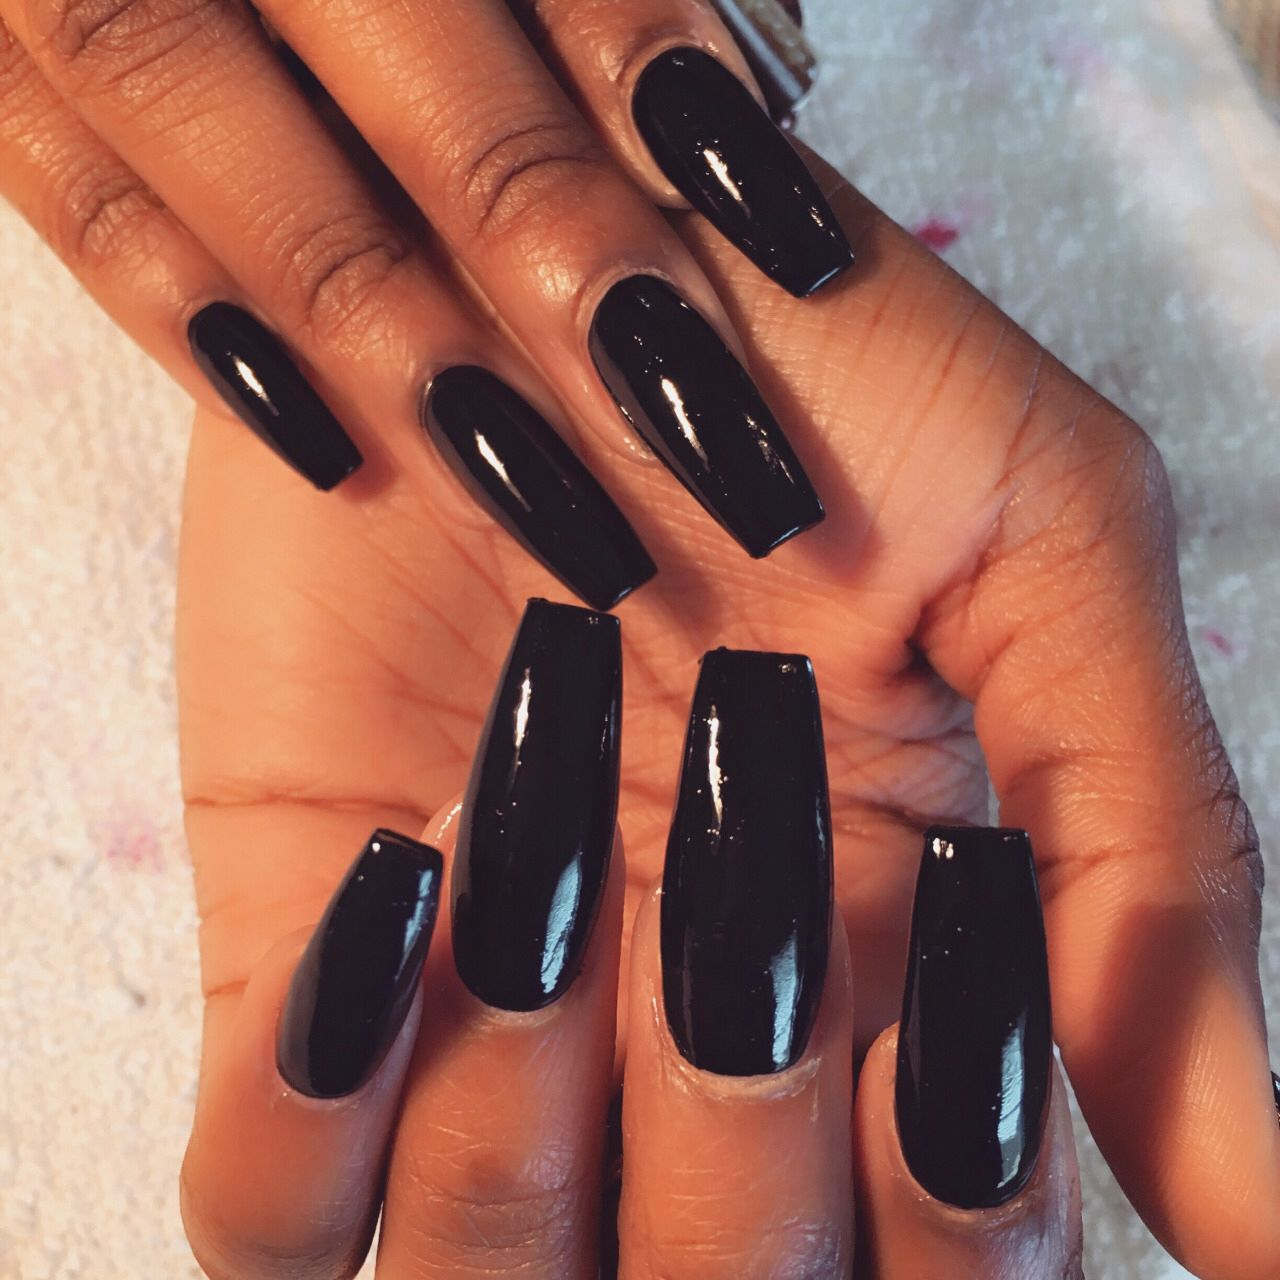 Long Black Nails Coffin Shaped Http Wtfimkels Tumblr Com Post 134940307322 Long Black Nails Coffin Acrylic Nail Shapes Squoval Nails Coffin Shape Nails